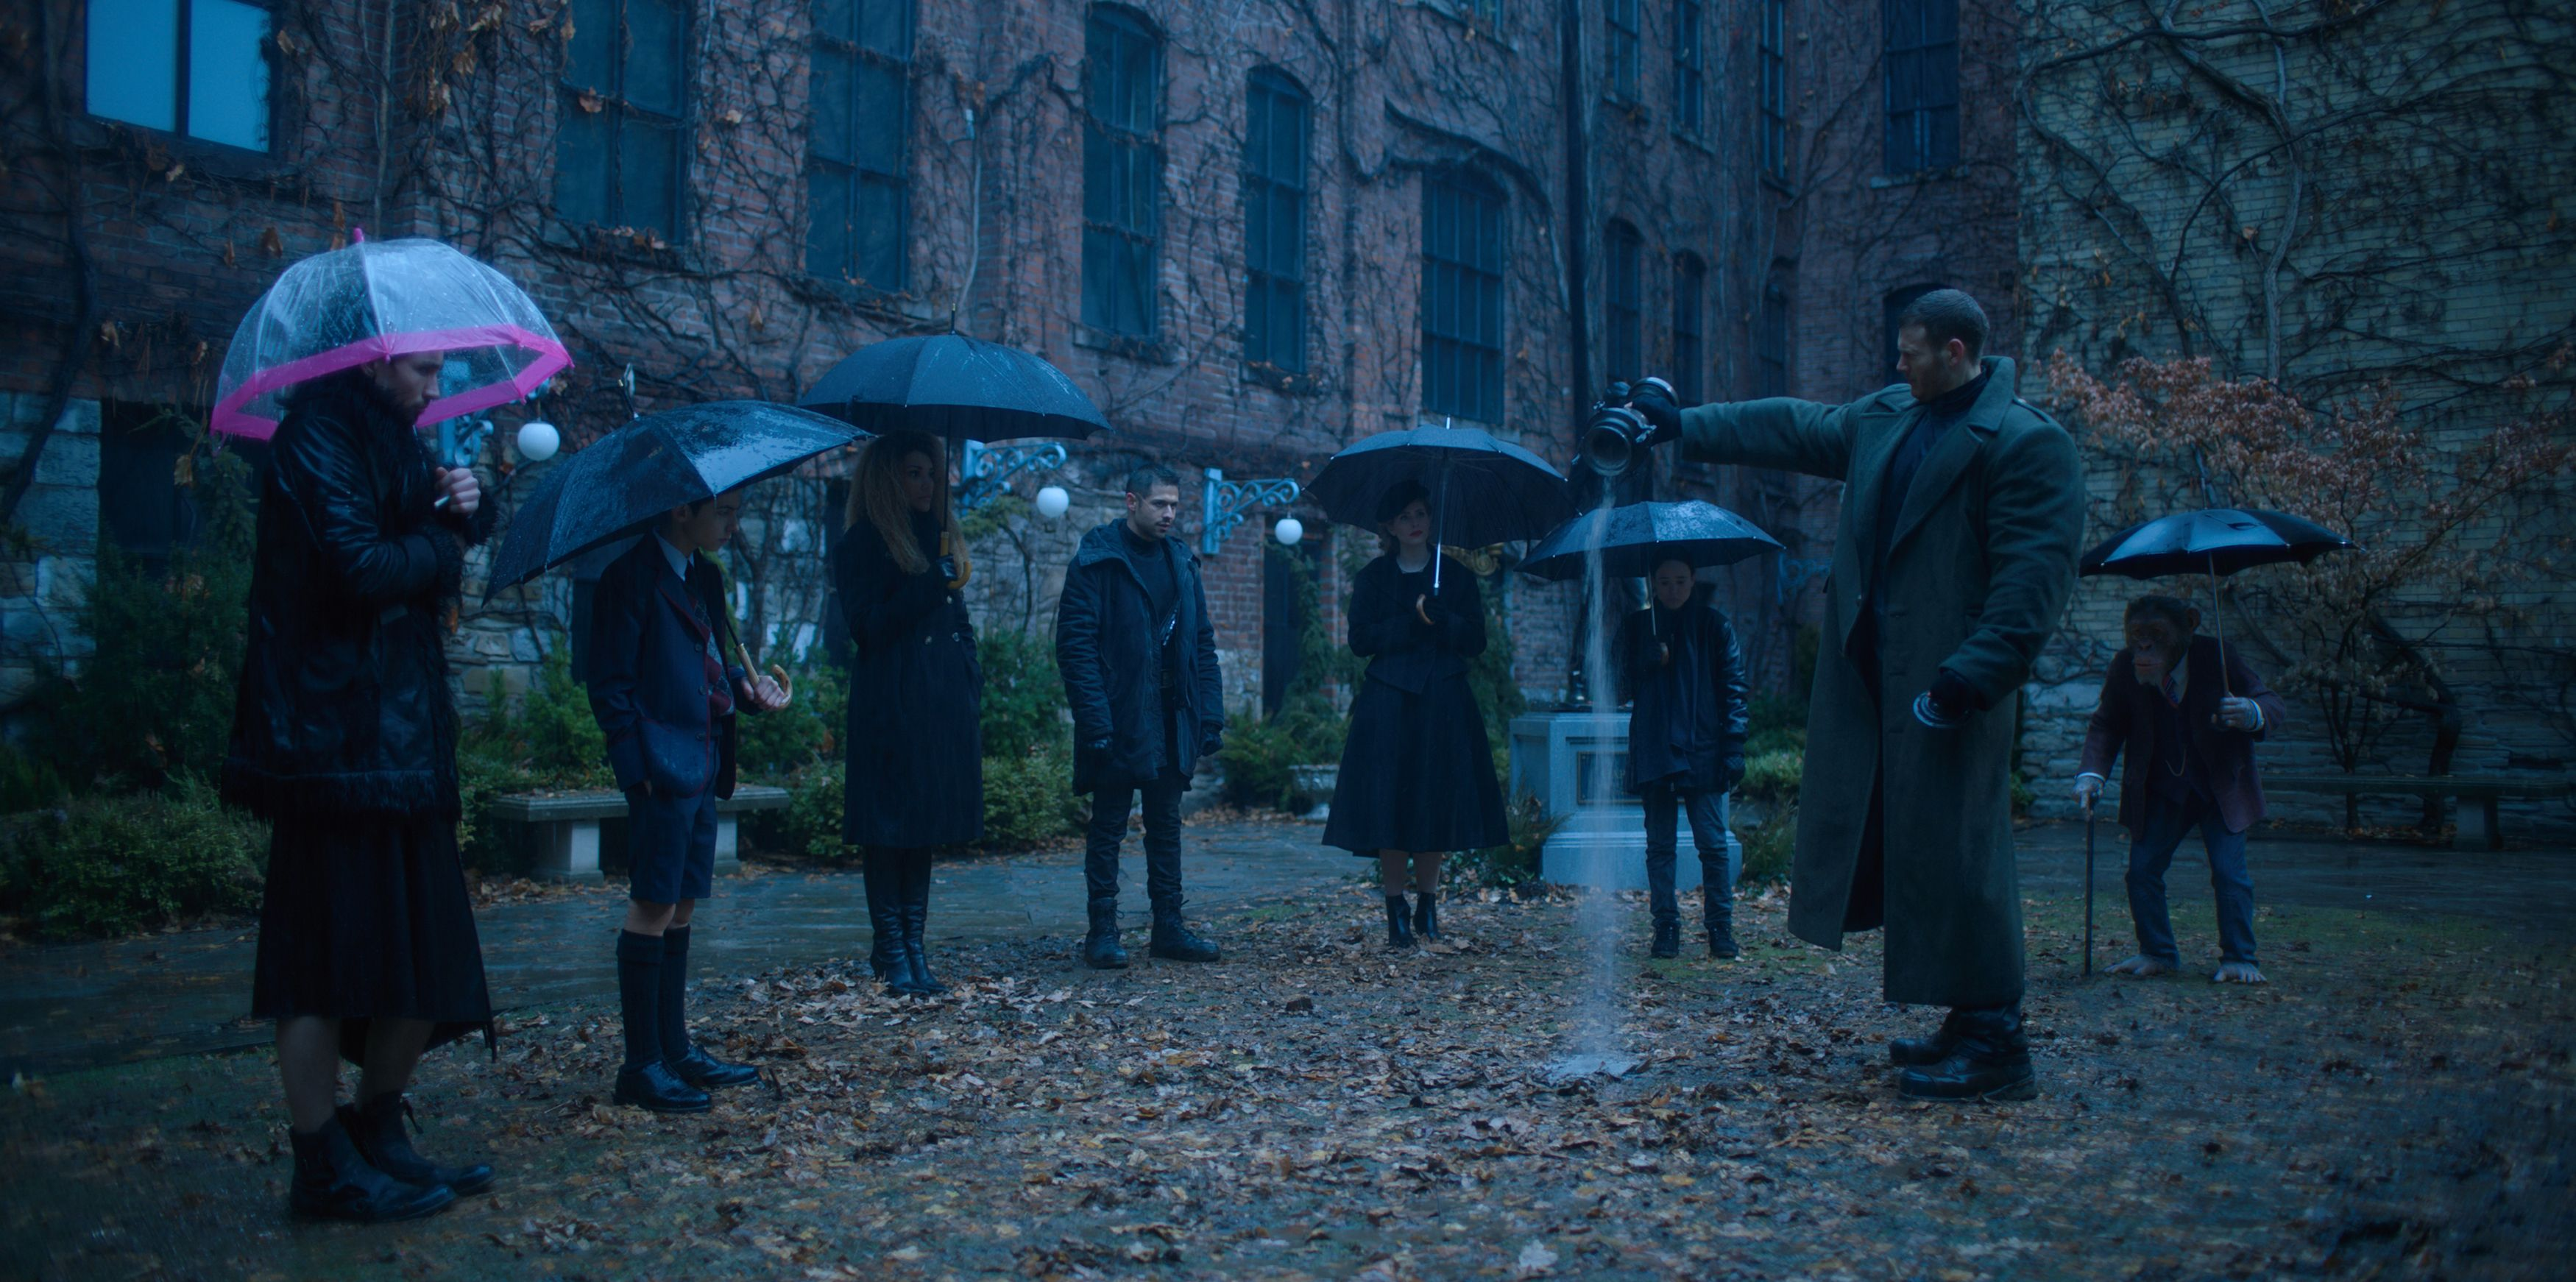 The Umbrella Academy Character Quiz - Which Member of The